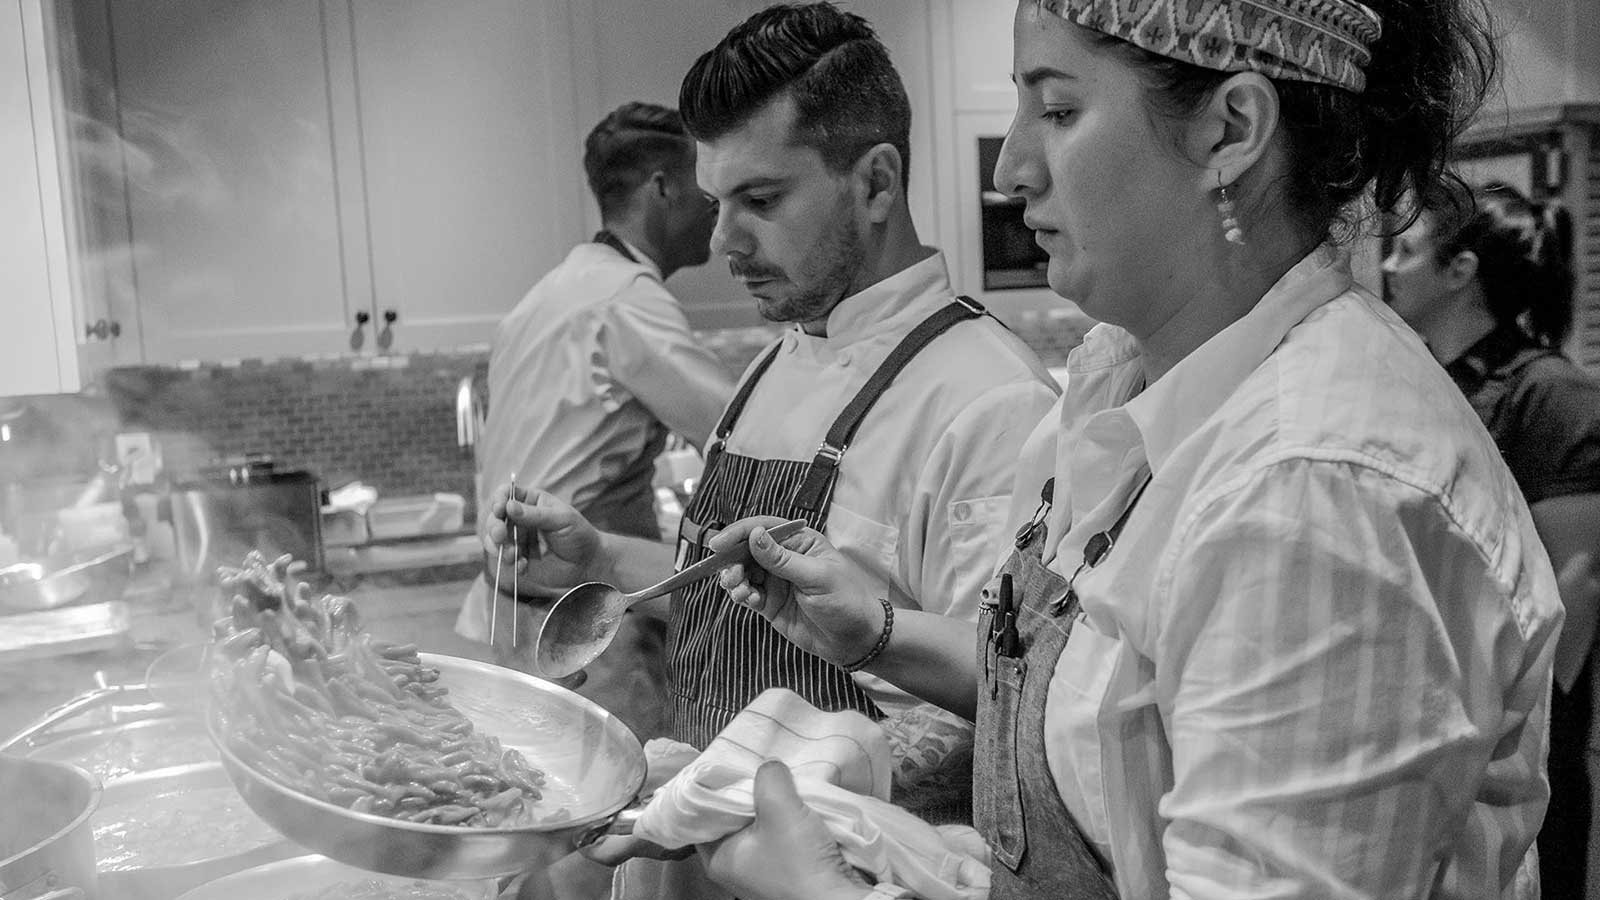 Top Chefs at Kosta Browne